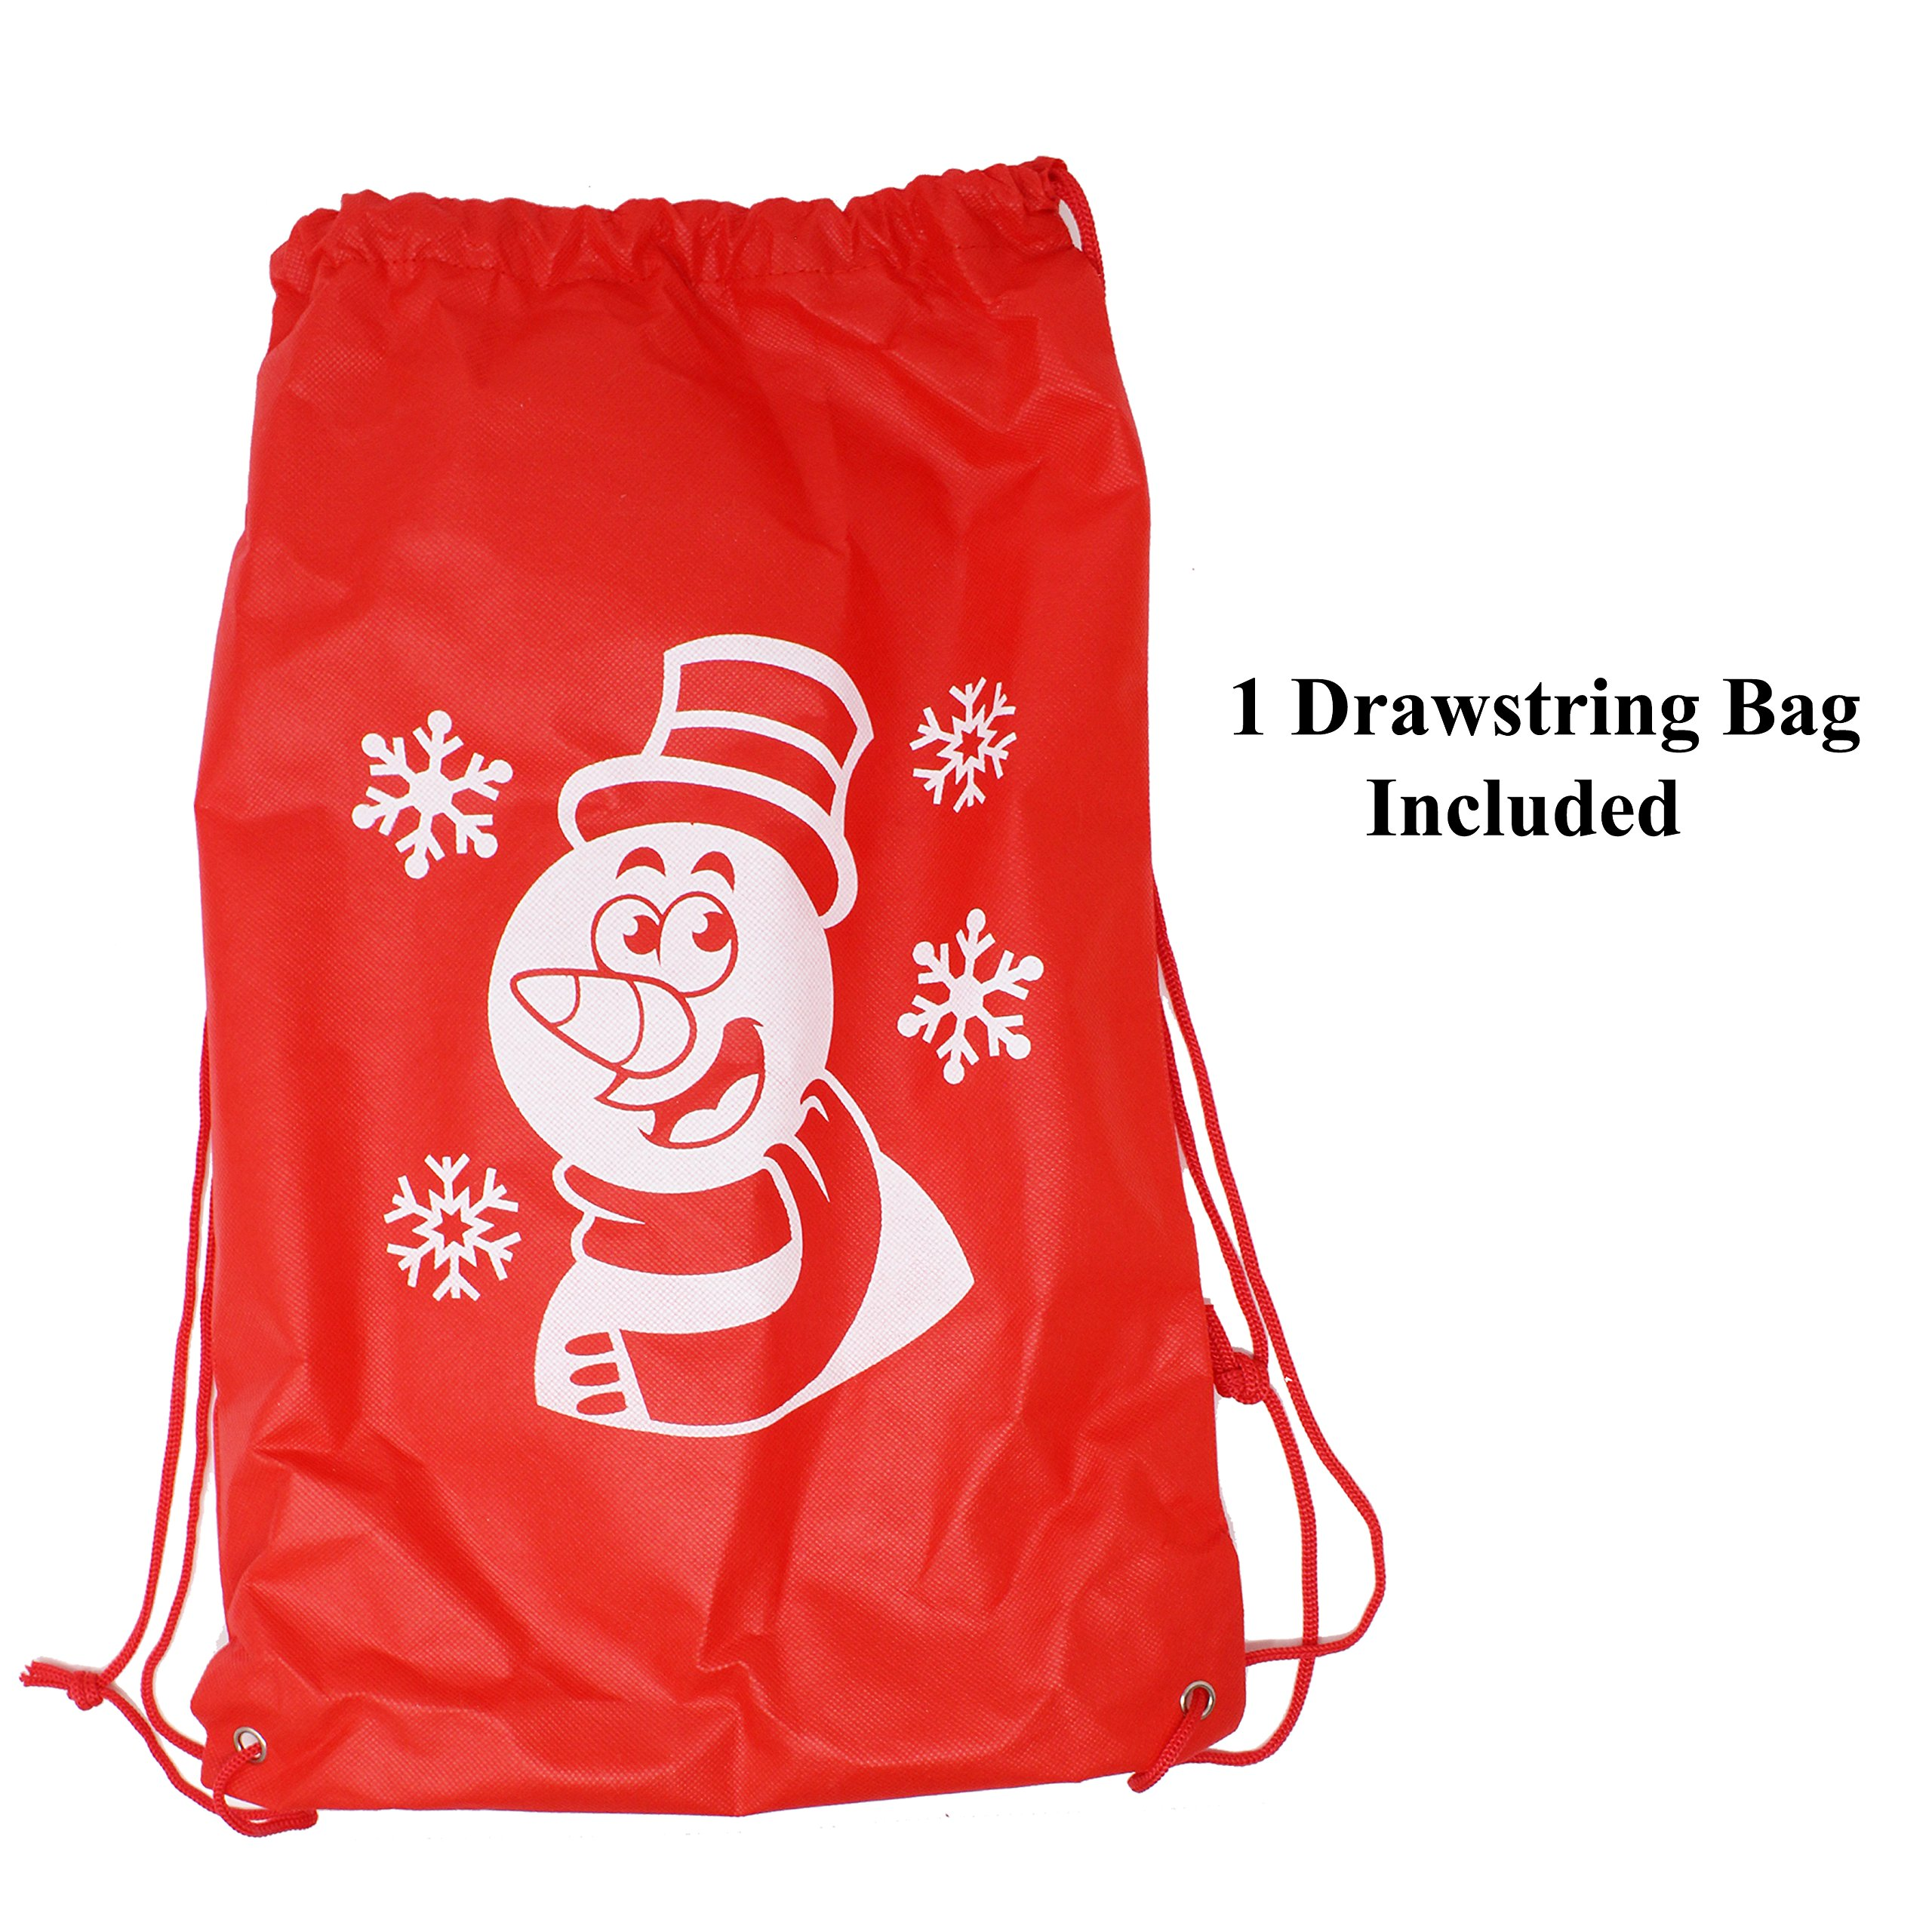 Joyin Toy Snowball Maker Snow Toys for Kids Red Yellow & Blue with Bonus Tote Bag - 3 Pack by Joyin Toy (Image #3)